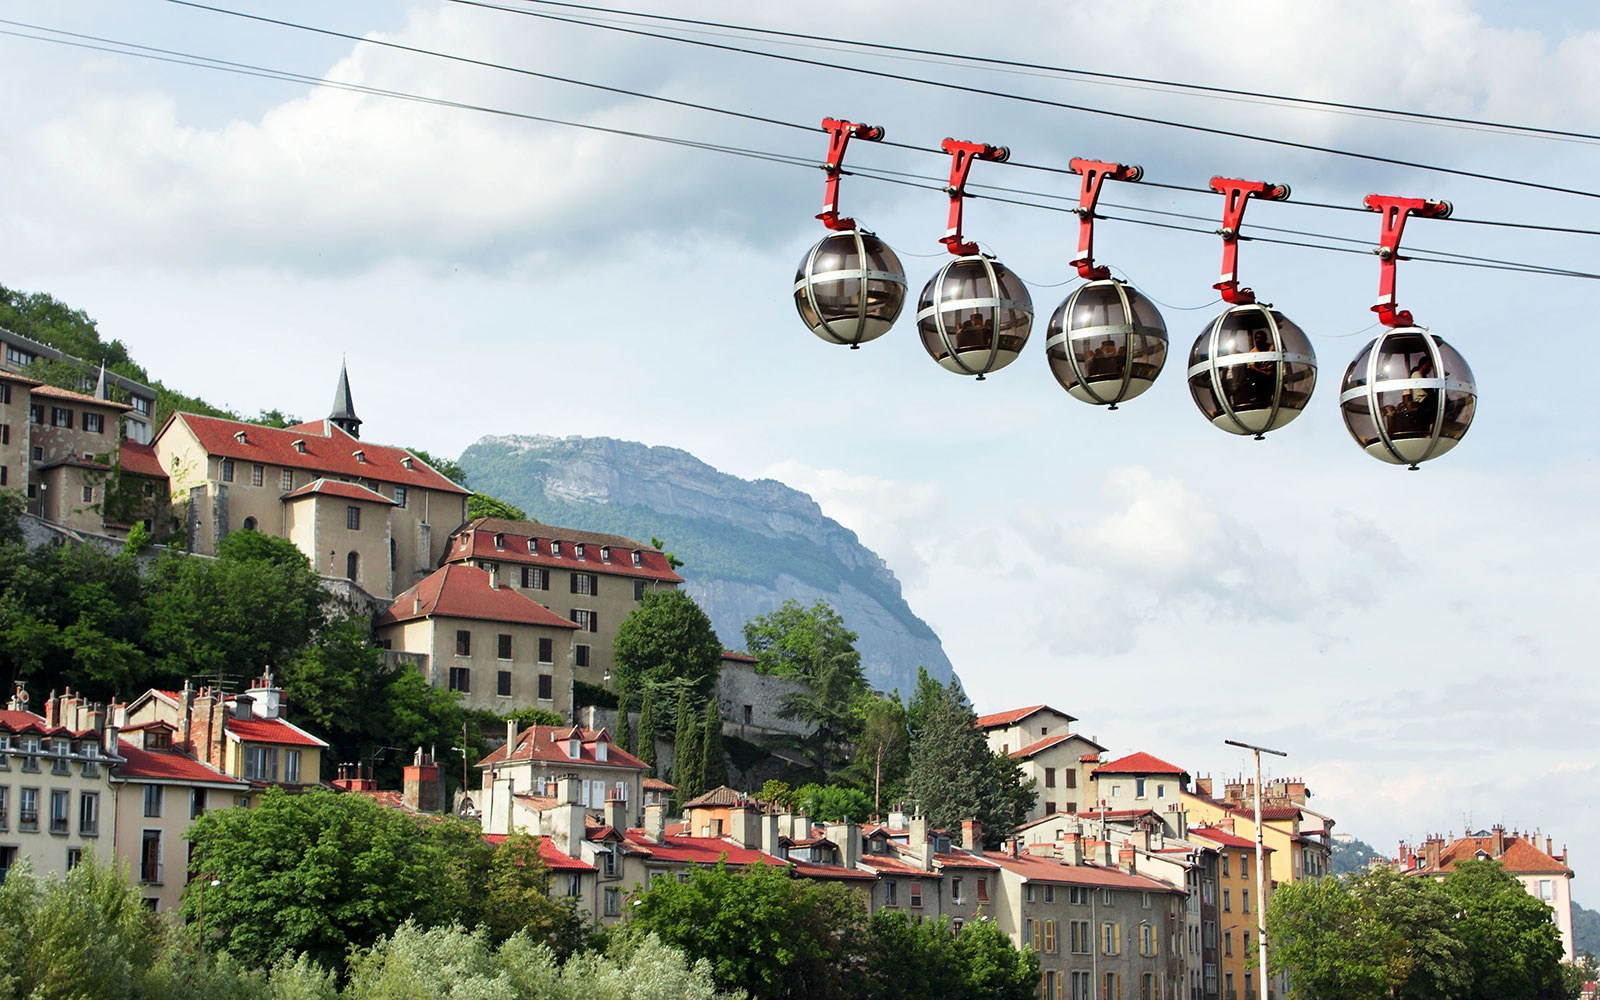 Grenoble-Bastille Cable Car, France